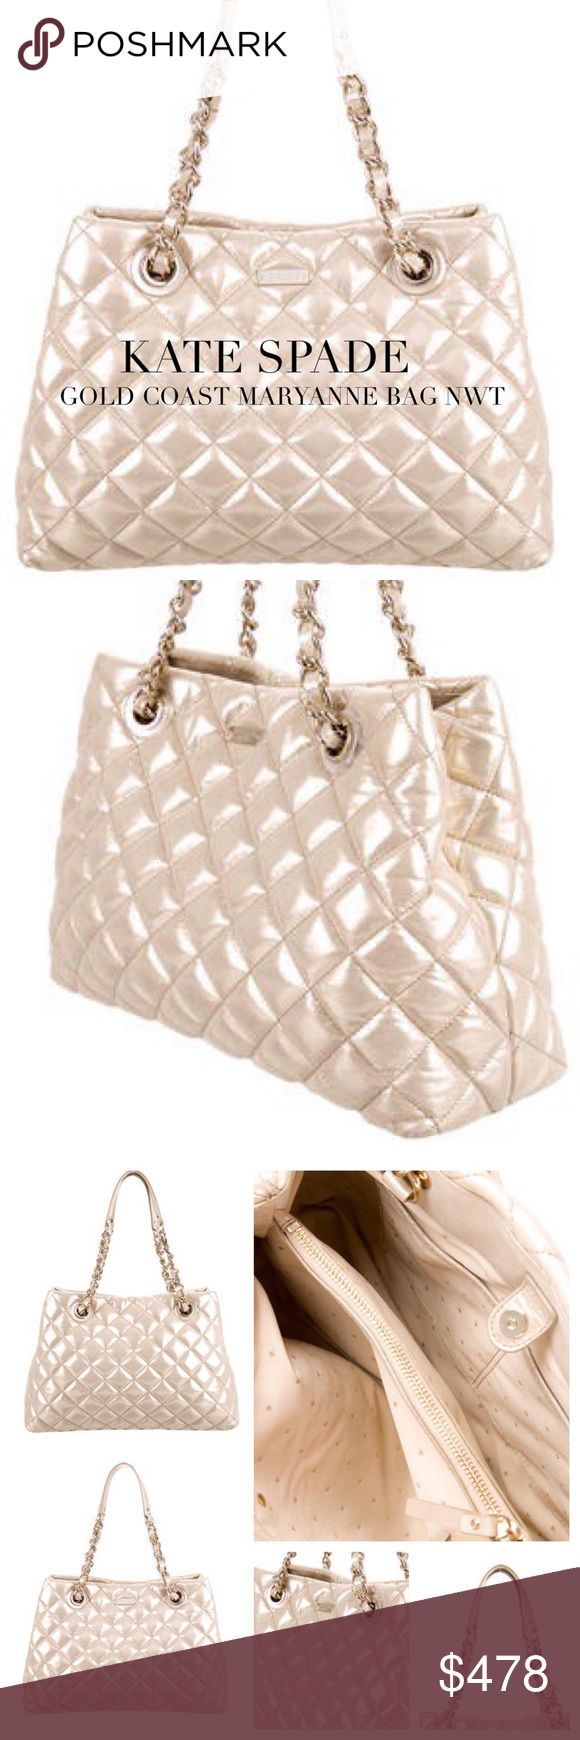 """KATE SPADE MARYANNE GOLD COAST BAG Kate Spade New York Gold Coast Maryanne bag in metallic gold-tone quilted leather with pale gold-tone hardware, dual flat shoulder straps with chain-link accents, beige polka dot woven lining, 3 interior compartments; 1 with zip closure, 3 pockets at interior walls; 1 with zip closure and magnetic snap closure at top. Includes dust bag. Approx Measurements: Shoulder Strap Drop 8.5"""", H: 10"""", W: 15"""", D: 4.5"""". Condition: Excellent. Includes dust bag. SOLD OUT…"""